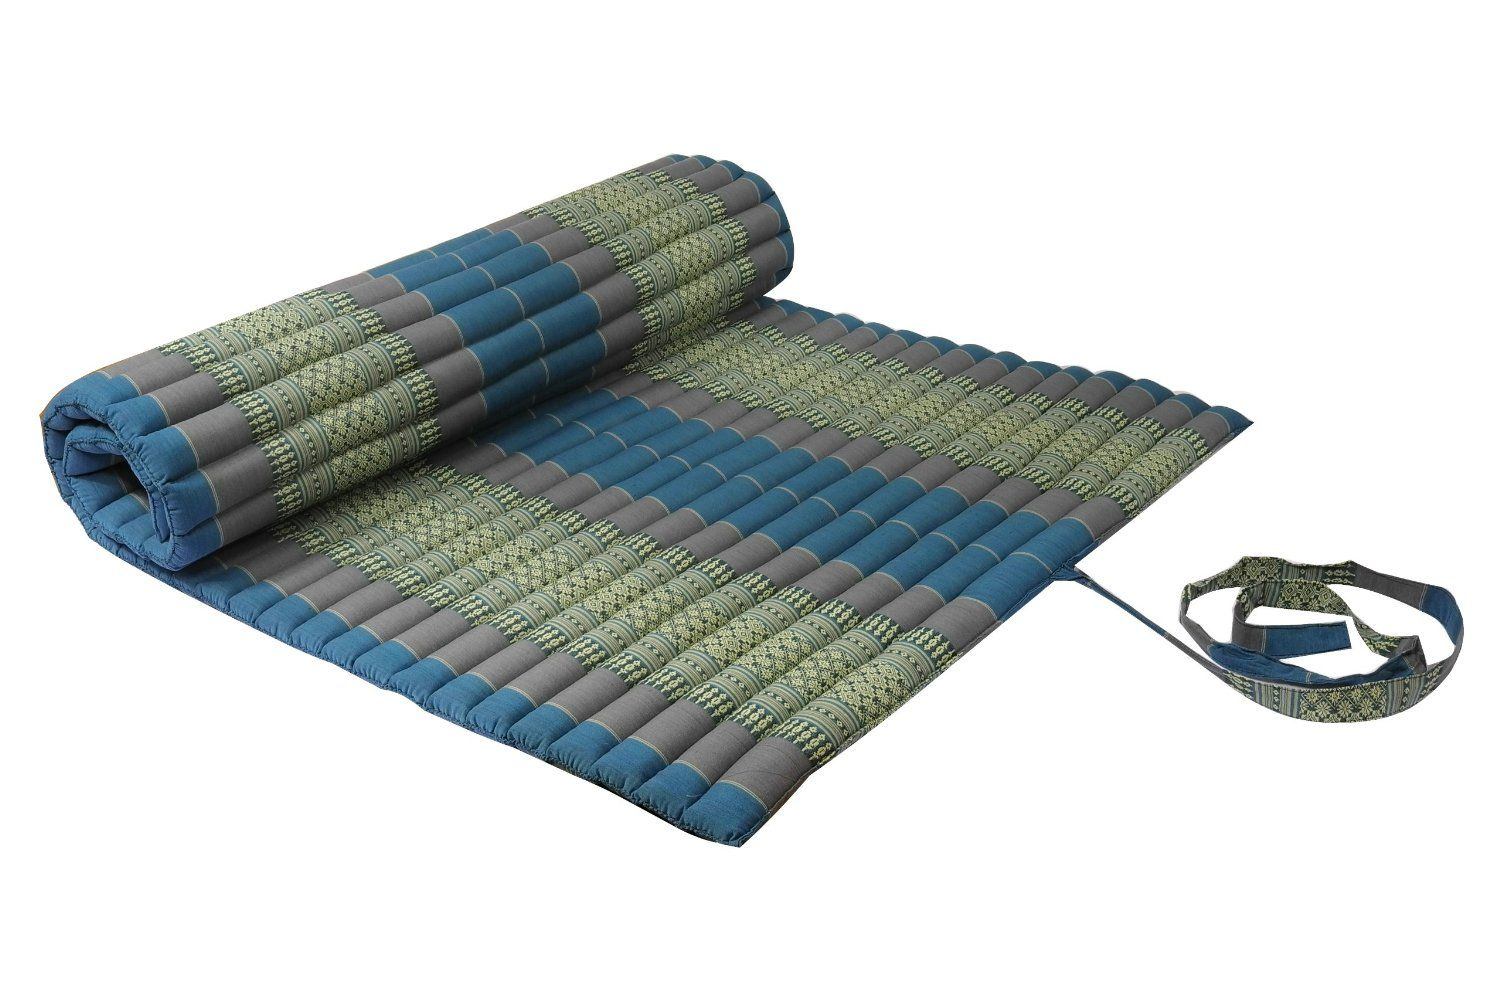 kitchen mats amazon what to clean grease off cabinets thai design mat rollable with kapok filling skyblues